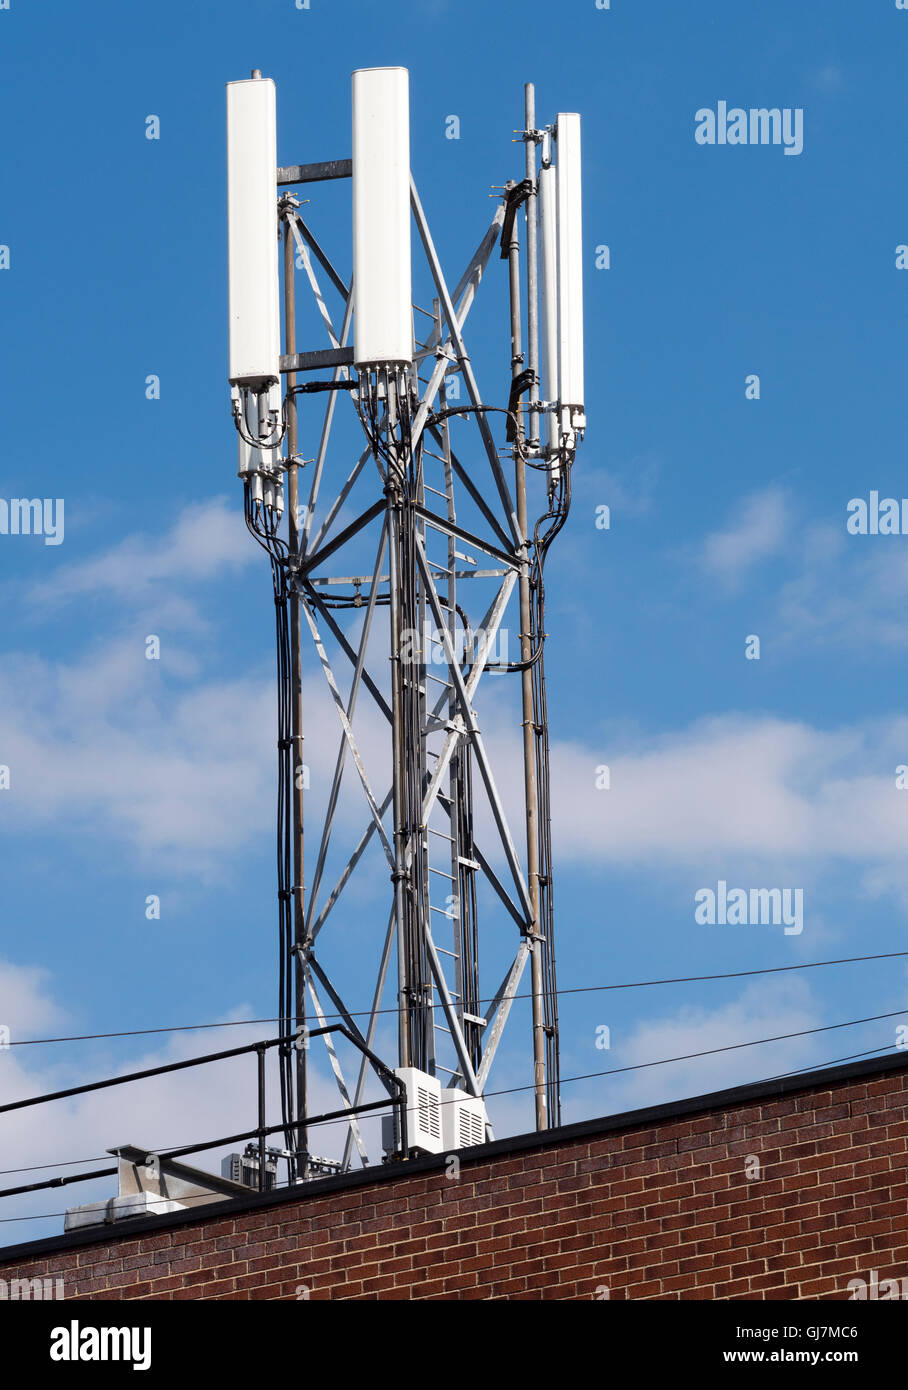 Communication aerials - mast - on top of building - Junction Road, Totton, Hampshire, England, UK - Stock Image